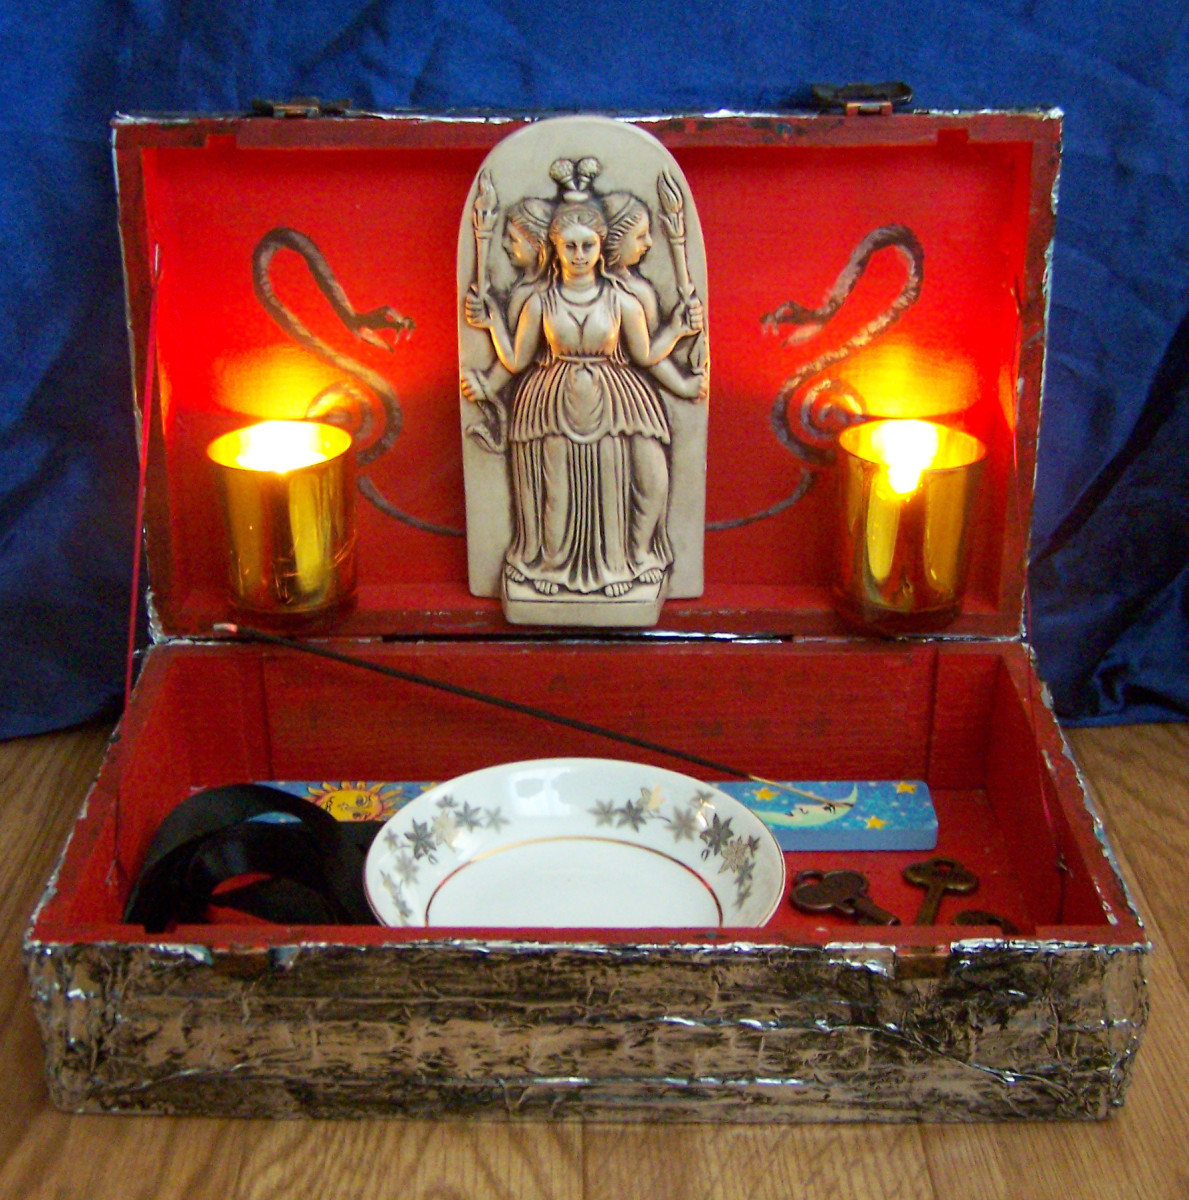 This shrine built into a box is convenient as I can pack it up when necessary and take it with me. If you live with people and don't feel comfortable keeping your shrine out in the open, this is a great solution.